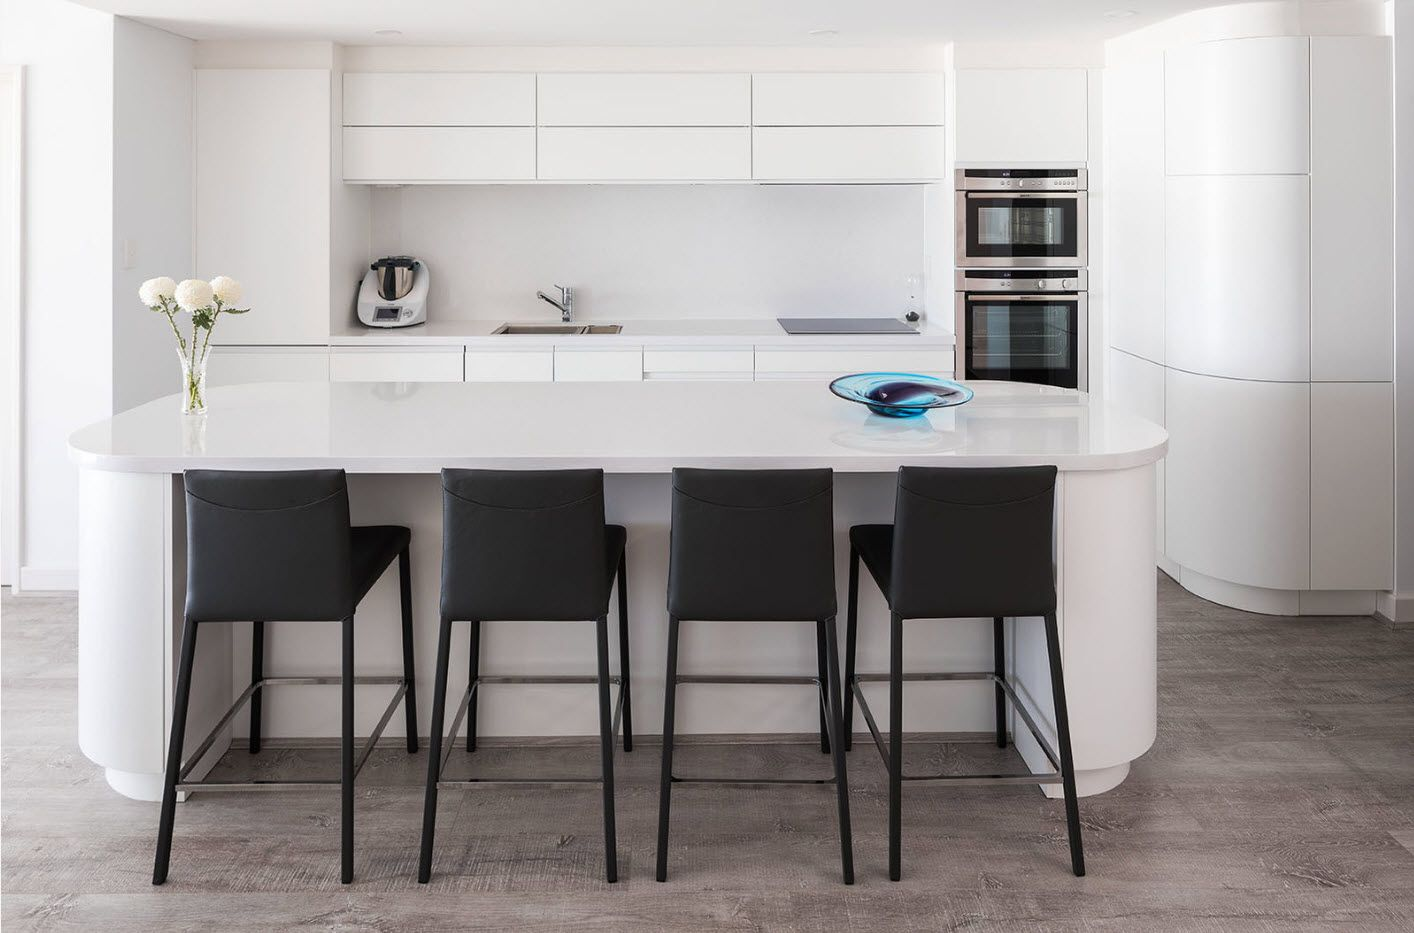 40 Square Feet Kitchen Modern Dedign Ideas & Layout Types. Dining zone with dark plastic chairs